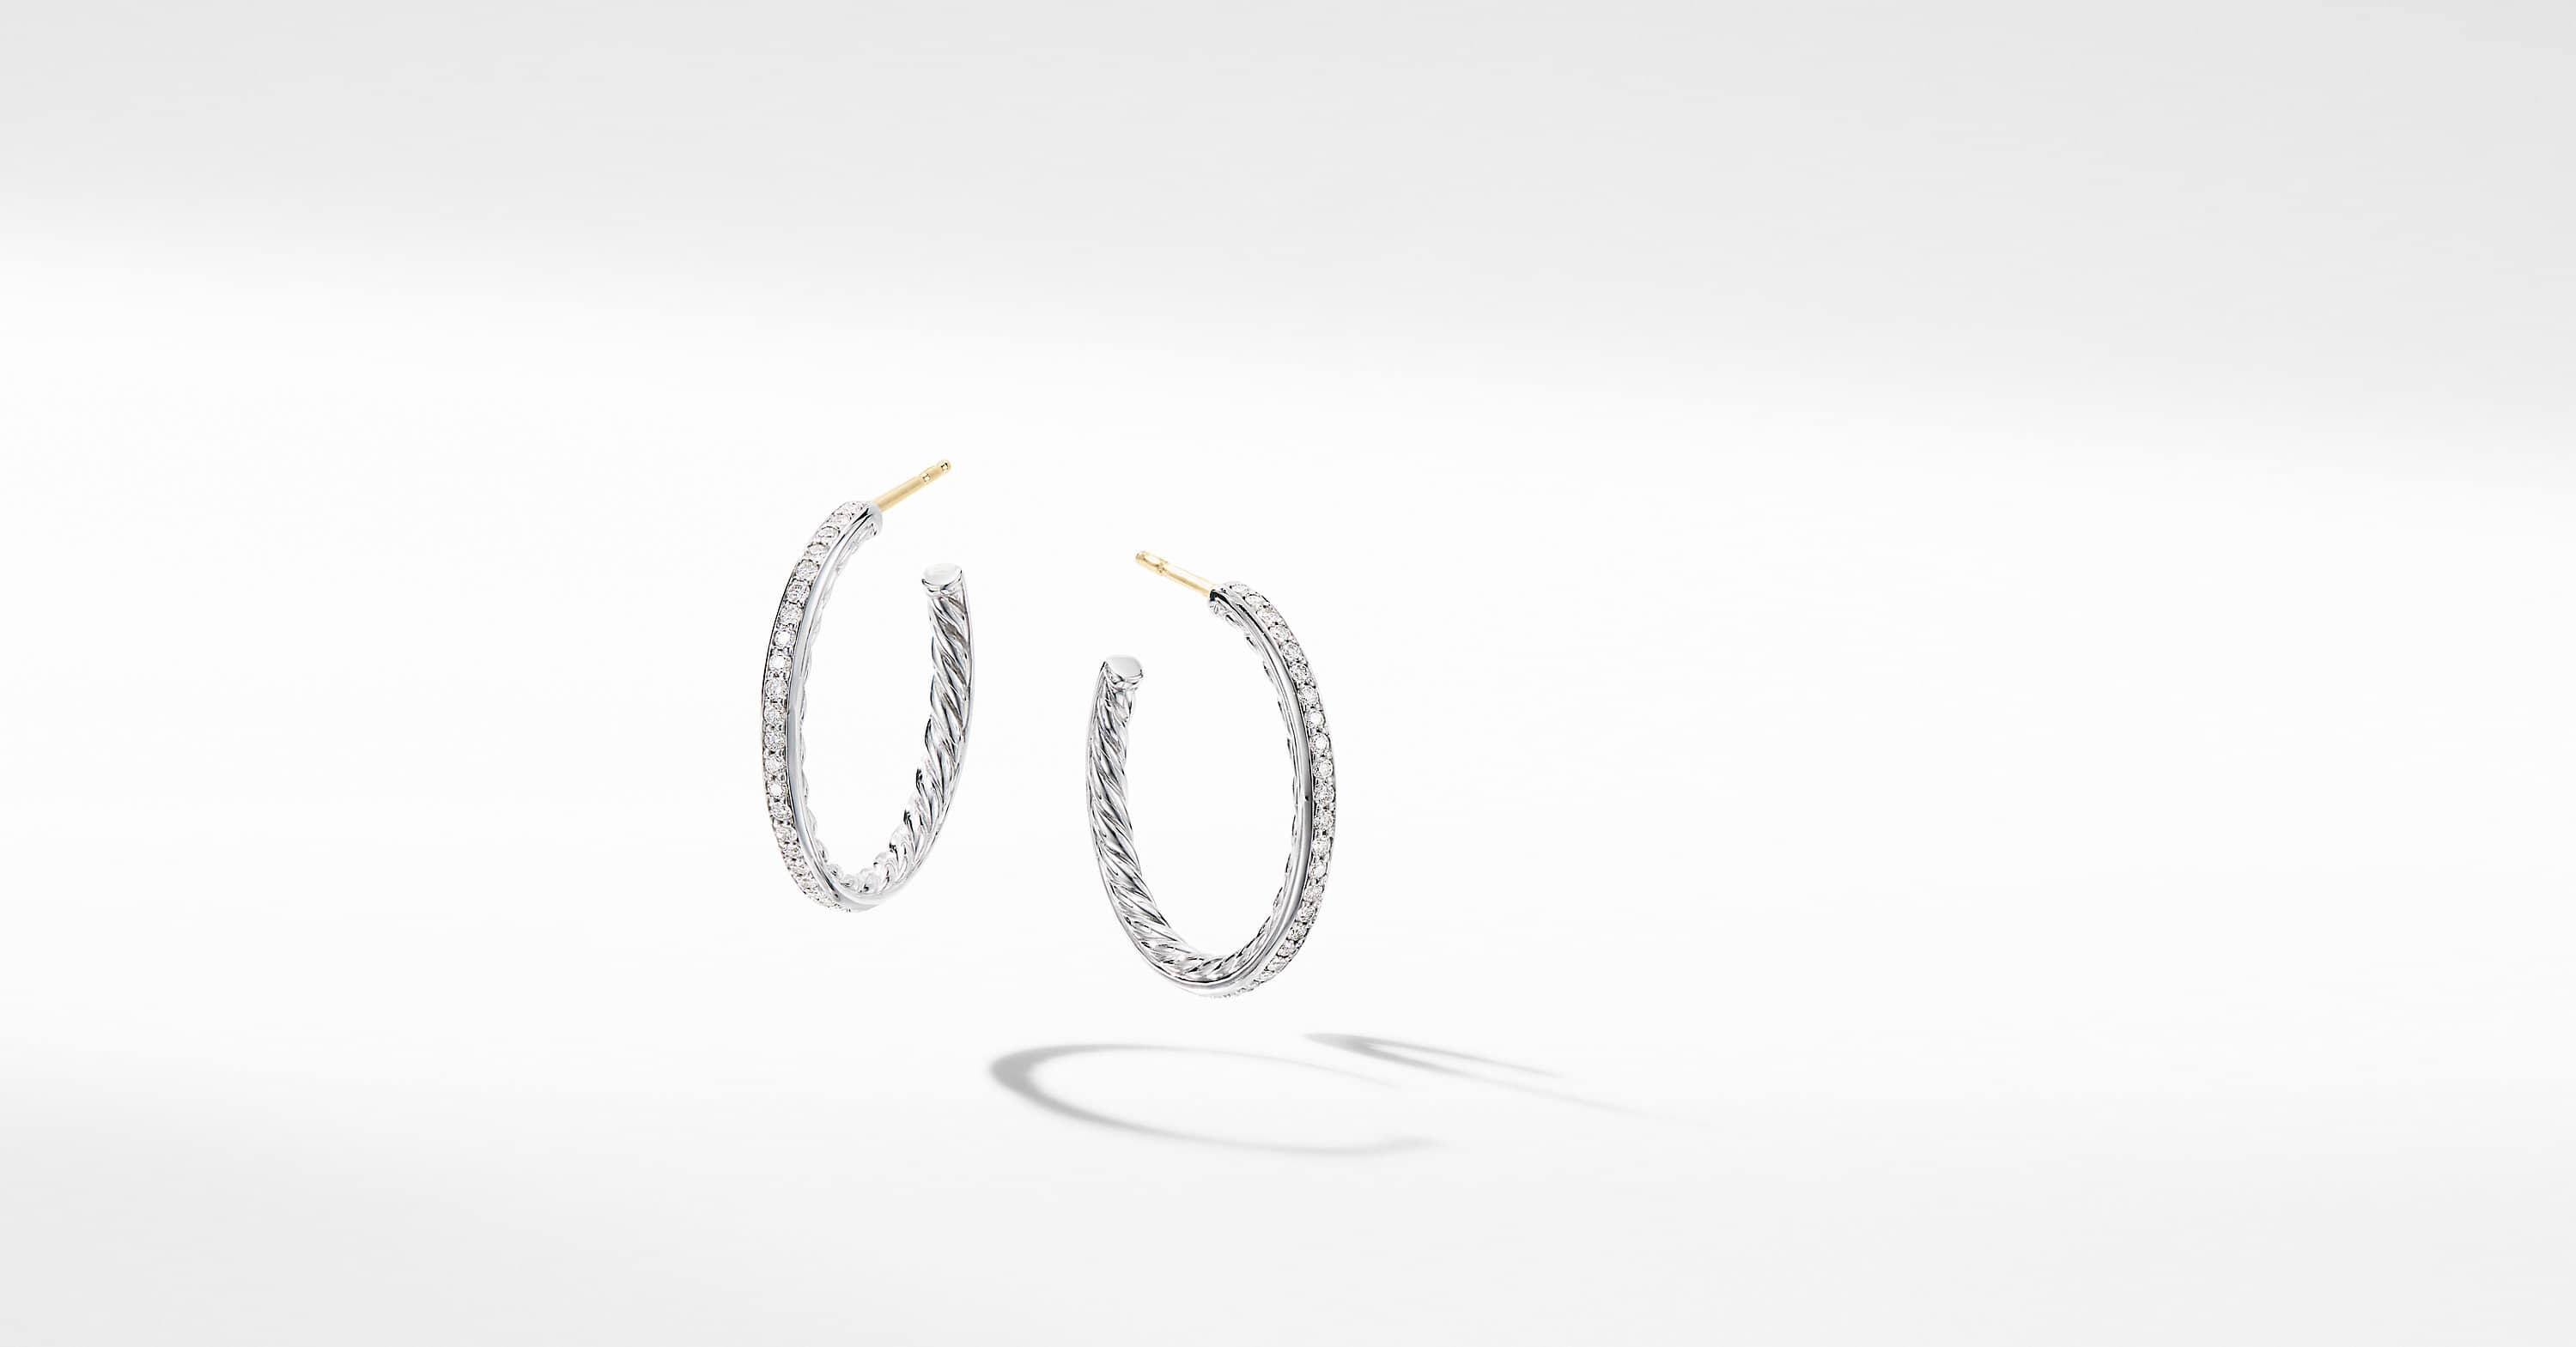 Small Hoop Earrings with Pavé